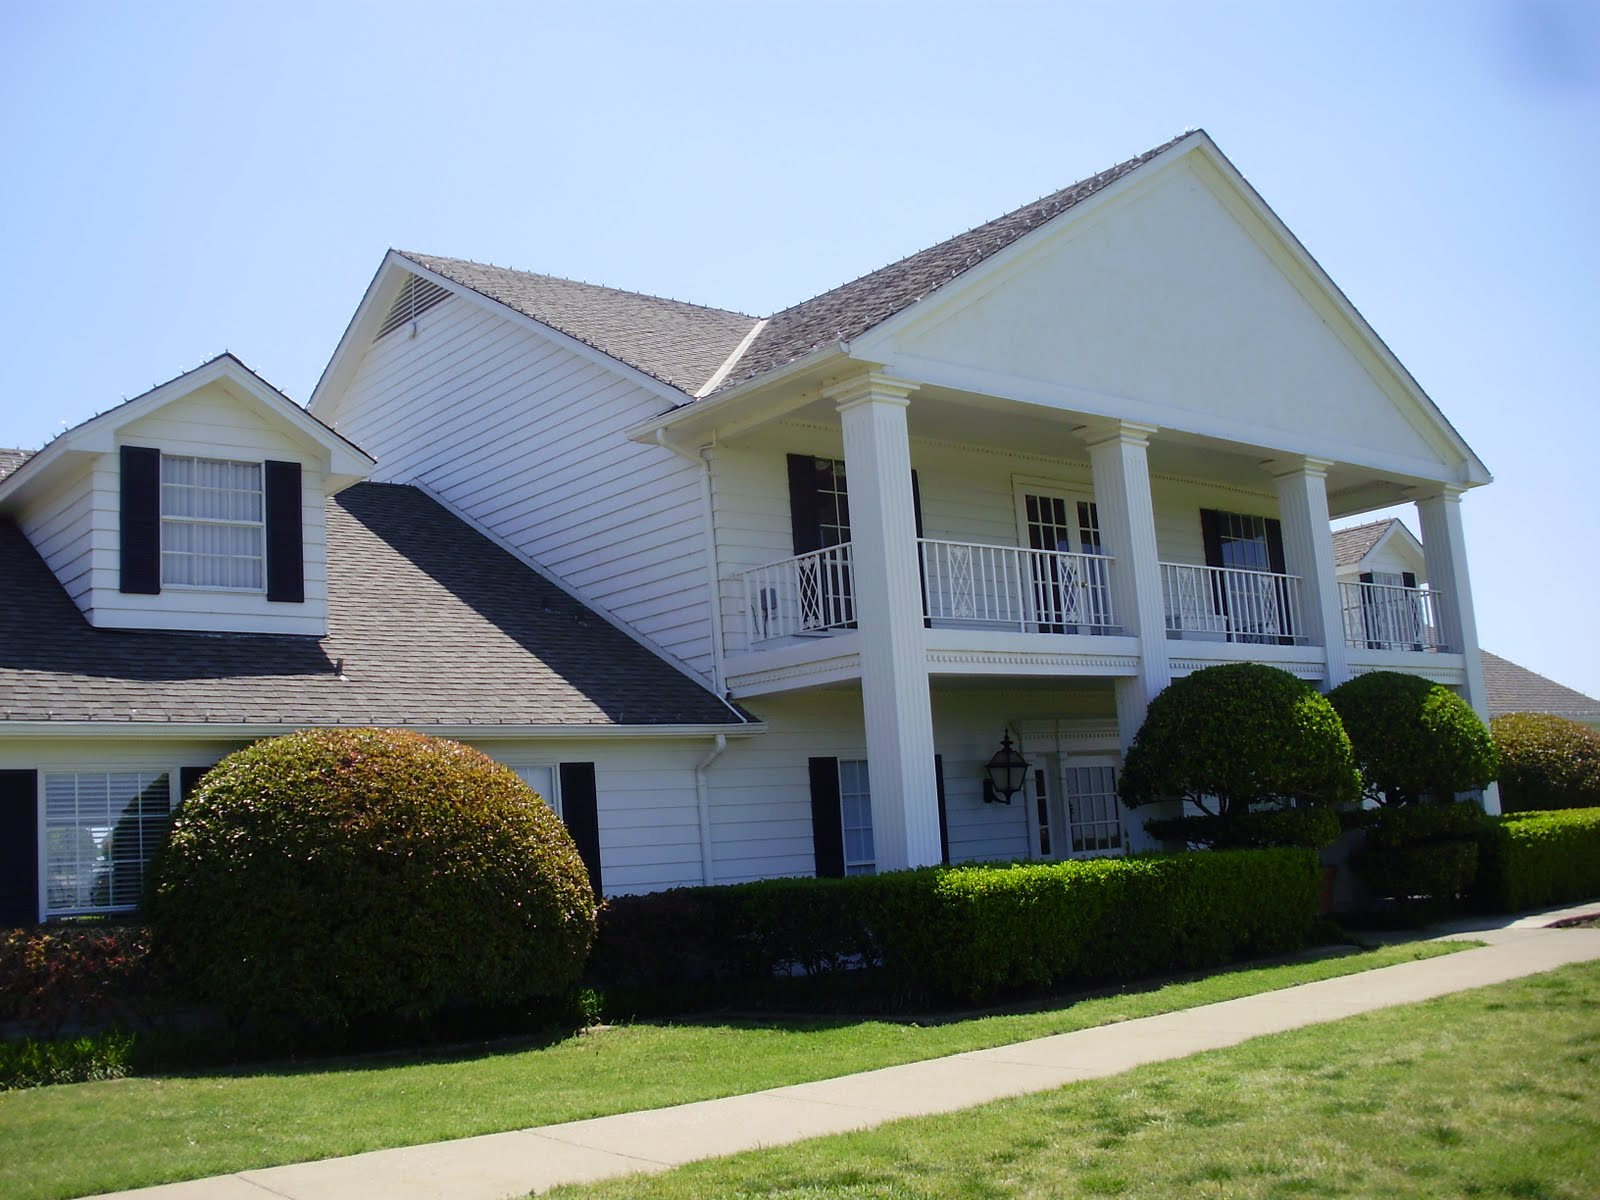 life at 55 mph southfork ranch in parker texas this was the southfork ranch in parker texas this was the filming location for the